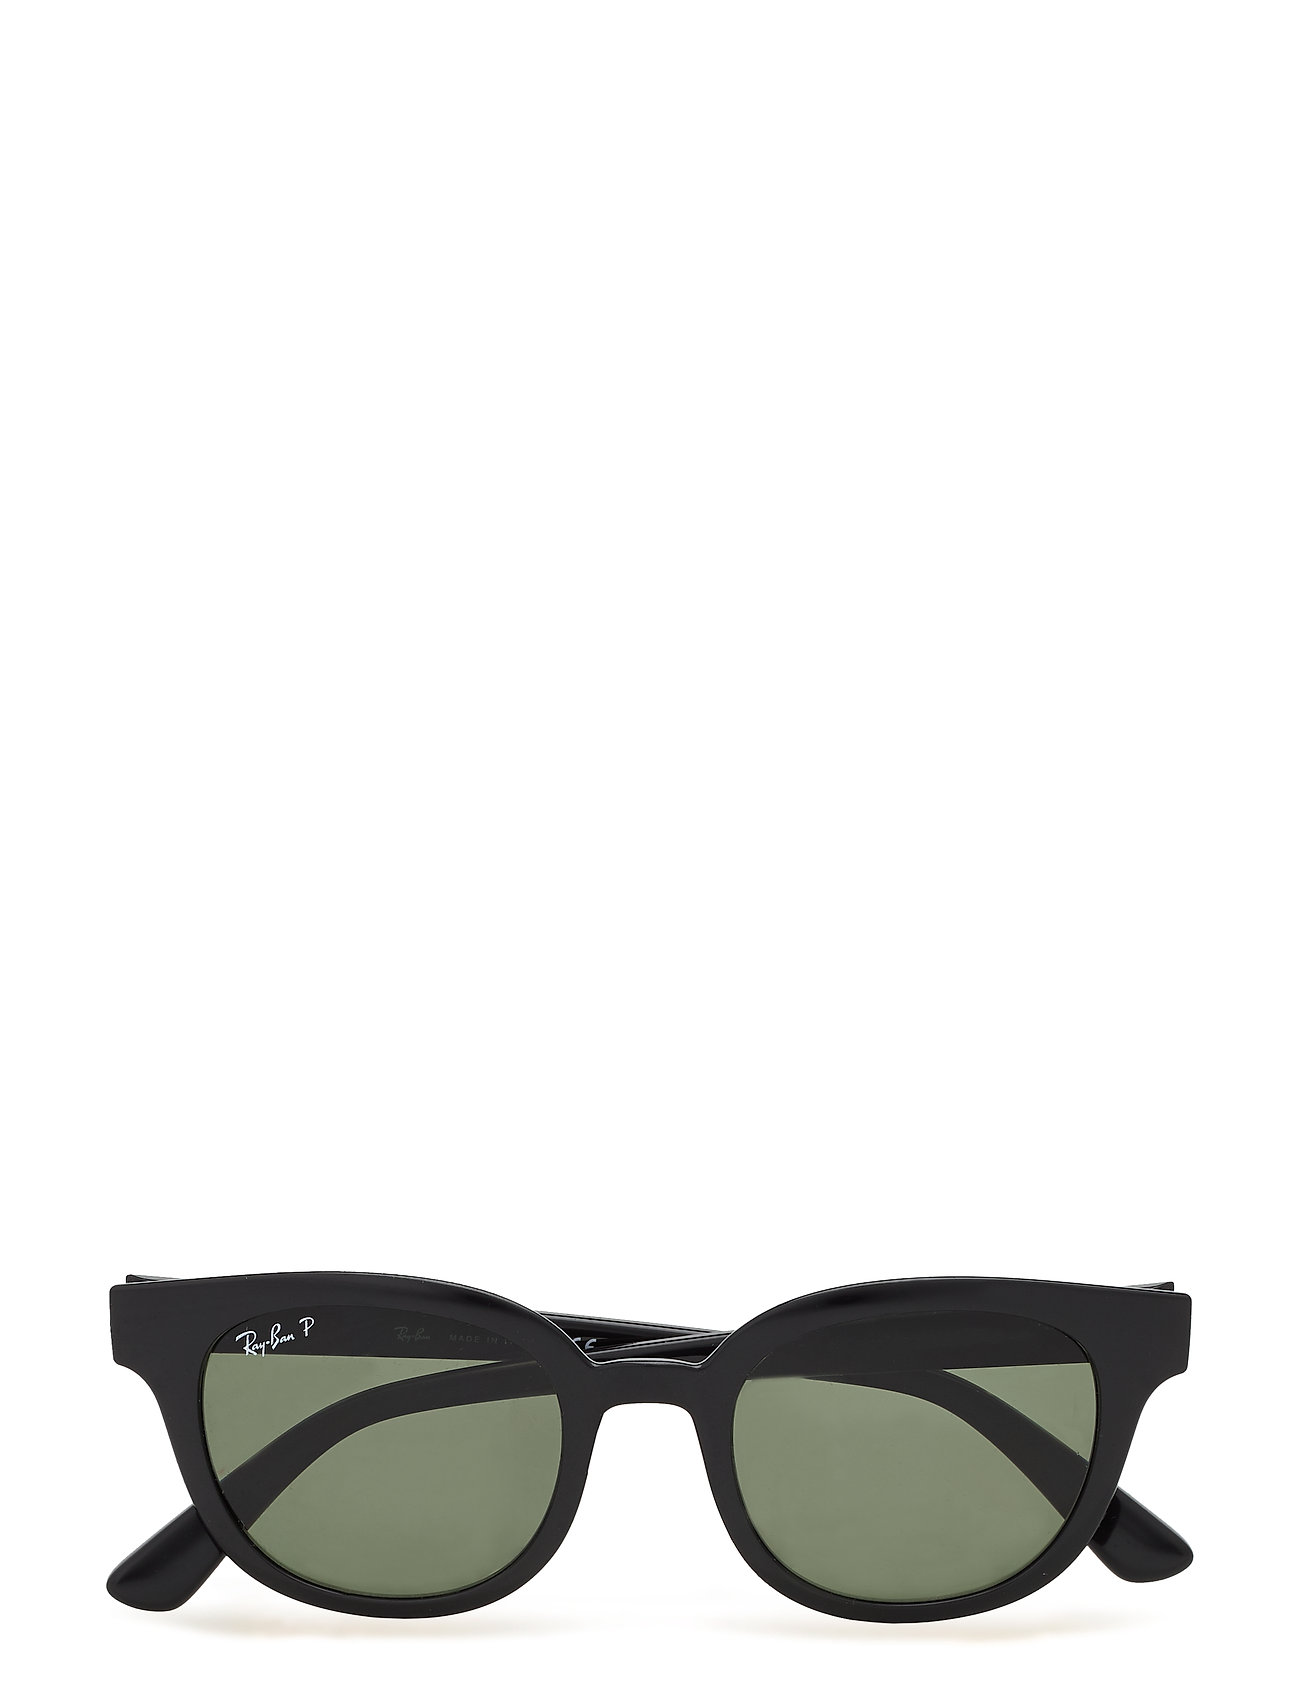 Image of Ray-Ban Sunglasses Solbriller Sort Ray-Ban (3326811541)